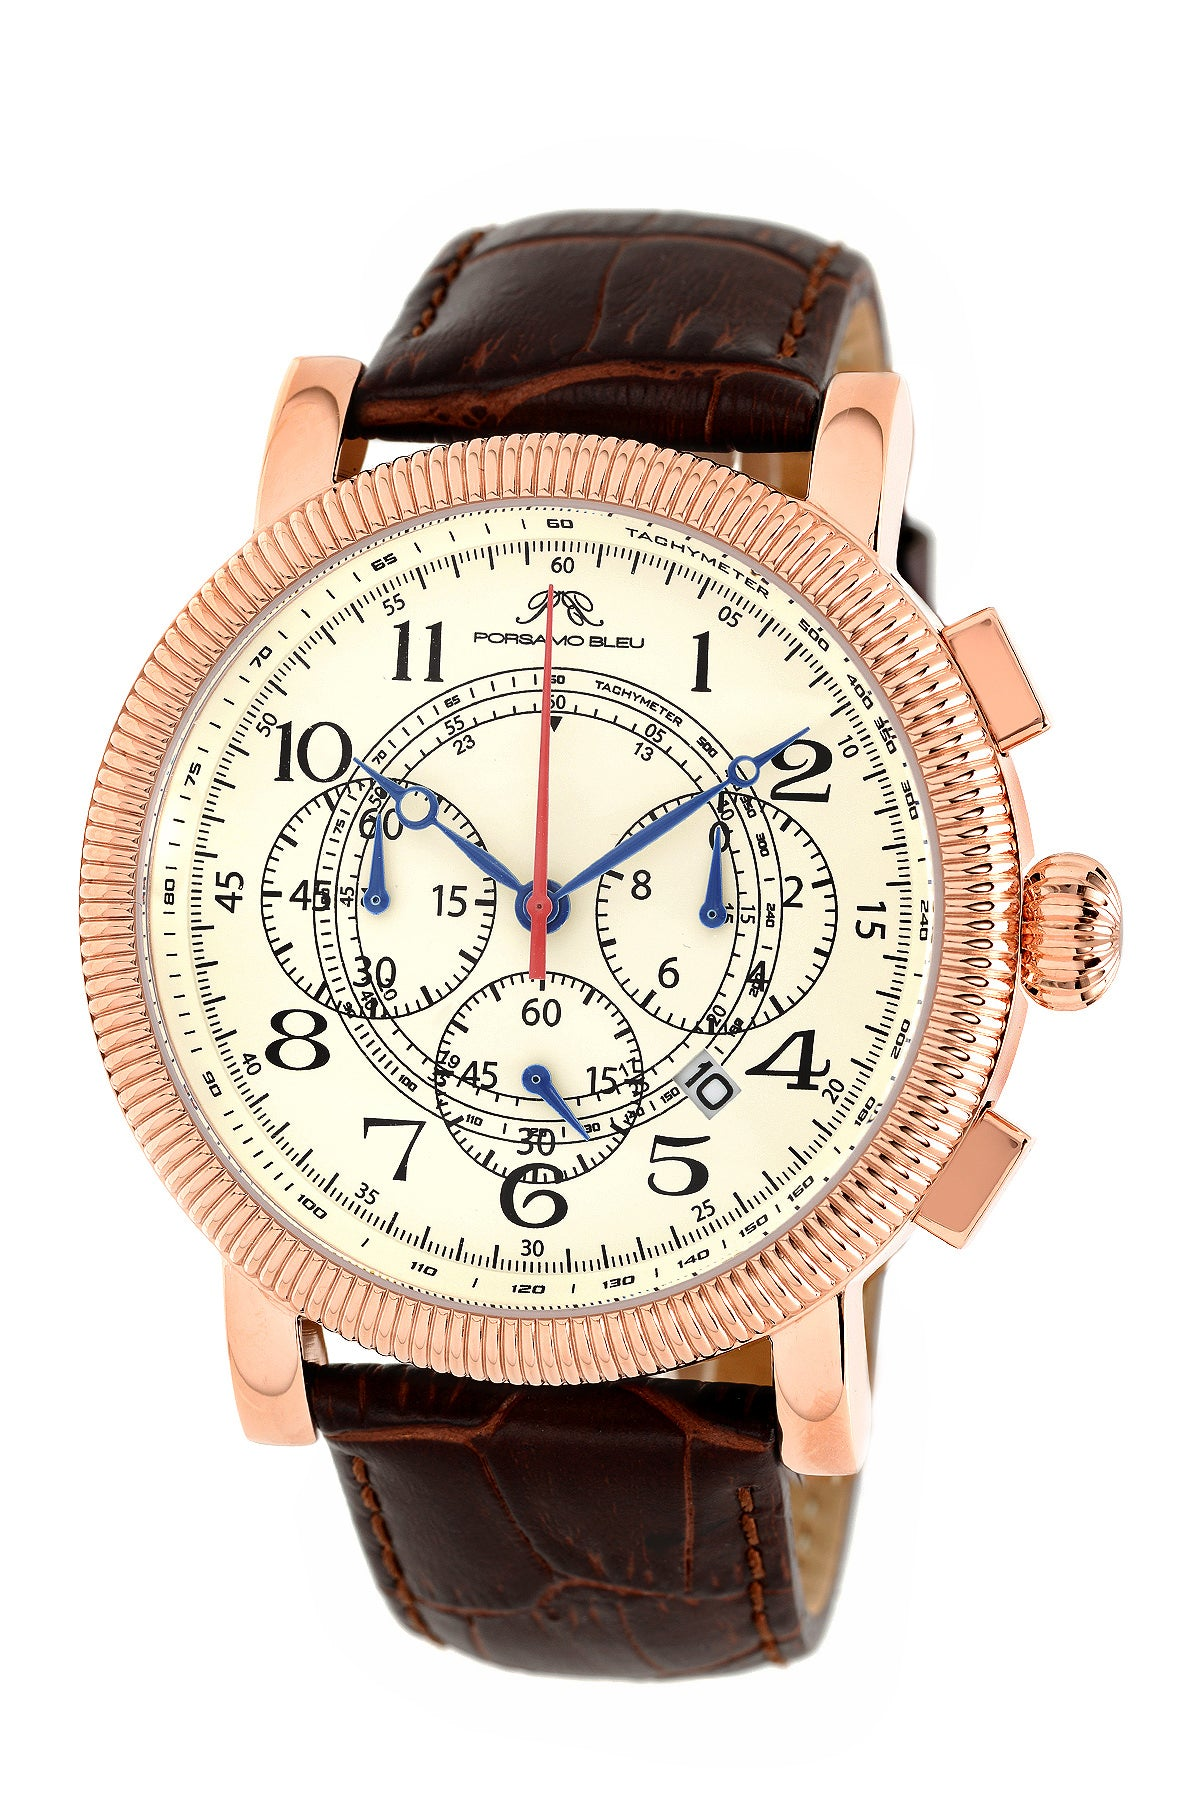 Porsamo Bleu Phileas luxury chronograph men's watch, genuine leather band rose, brown 471CPHL